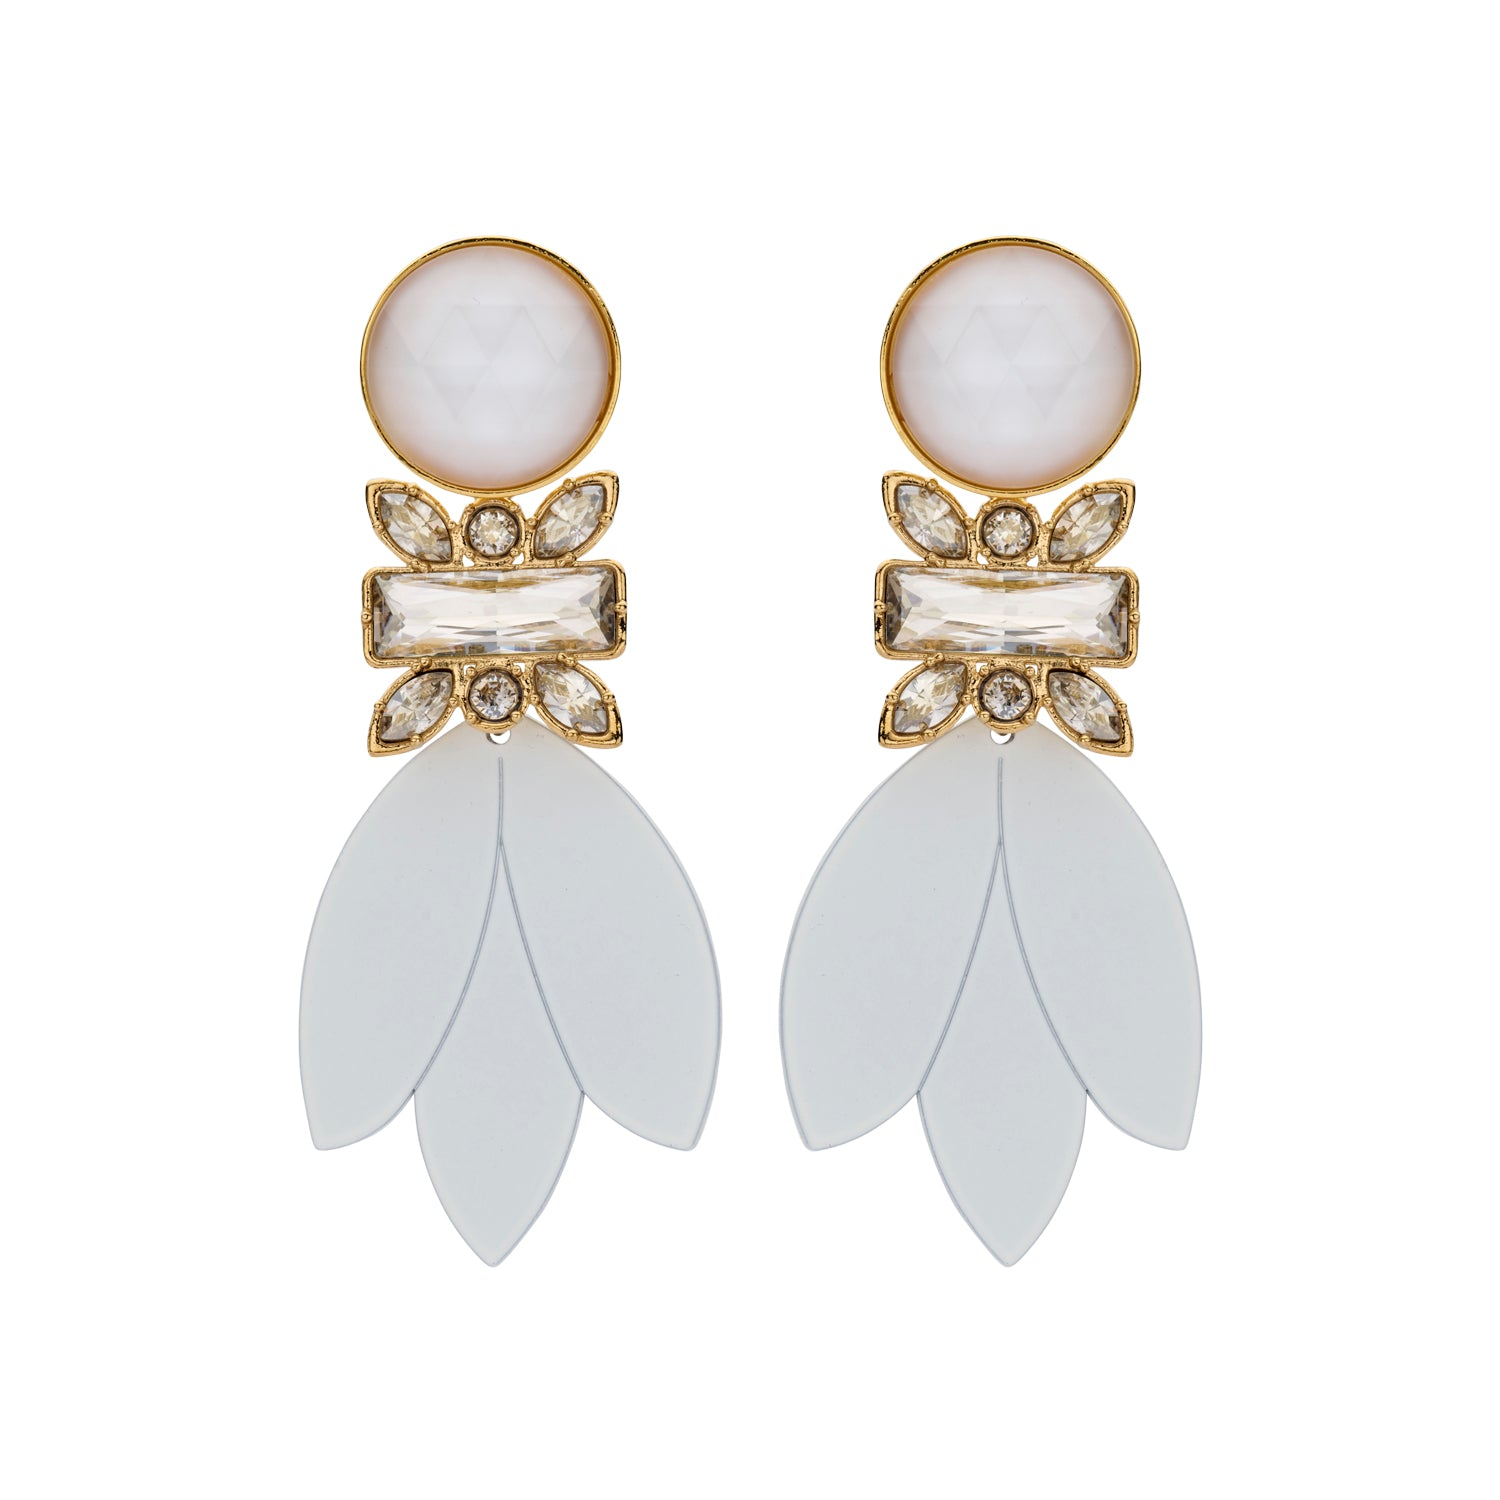 Pomme bridal statement earrings